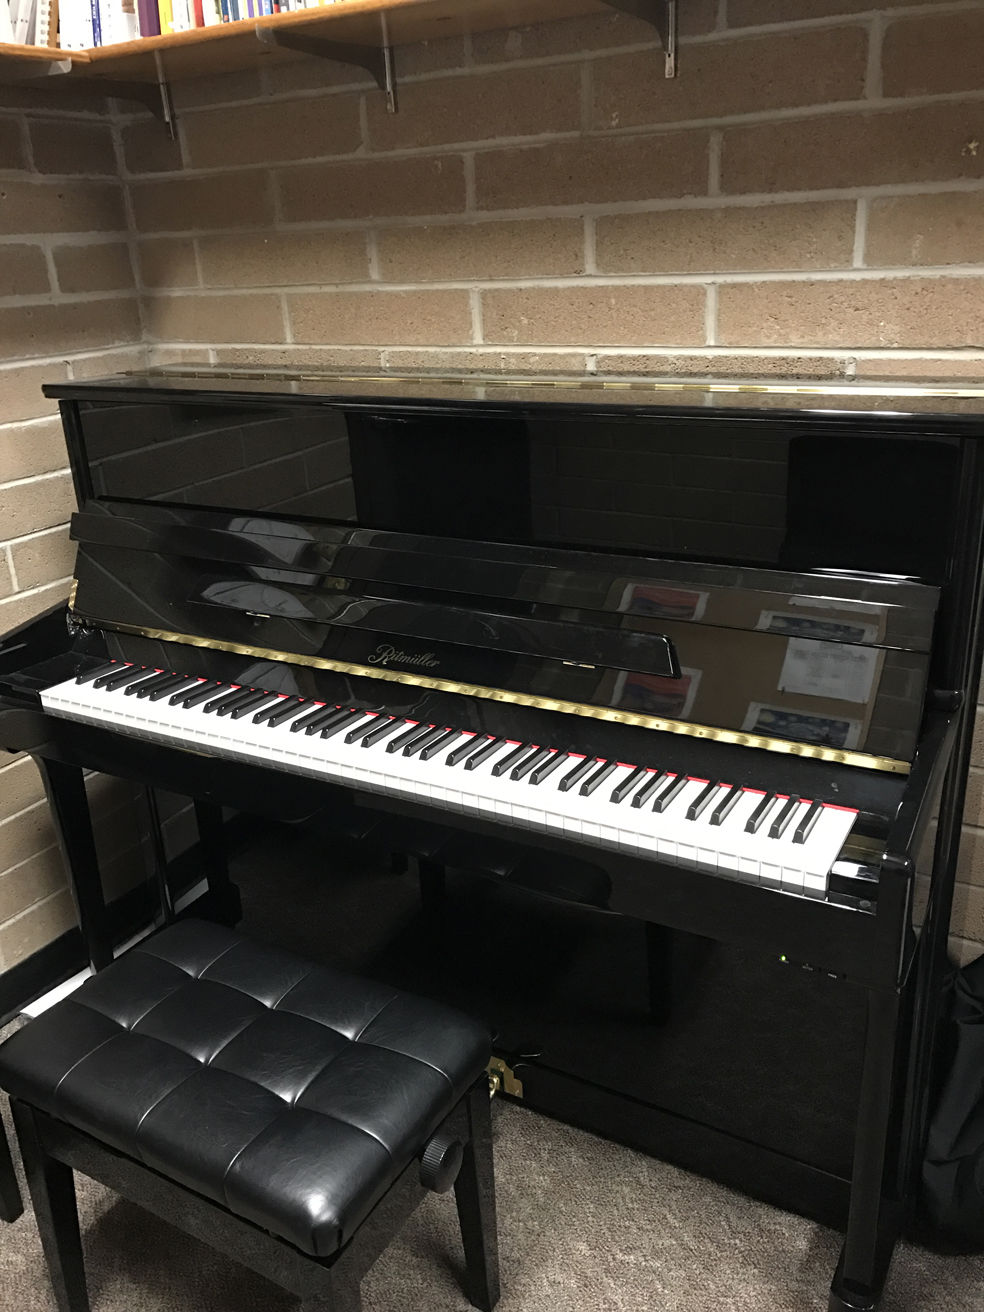 Eac introduces first german piano on campus local news for Piano diviso